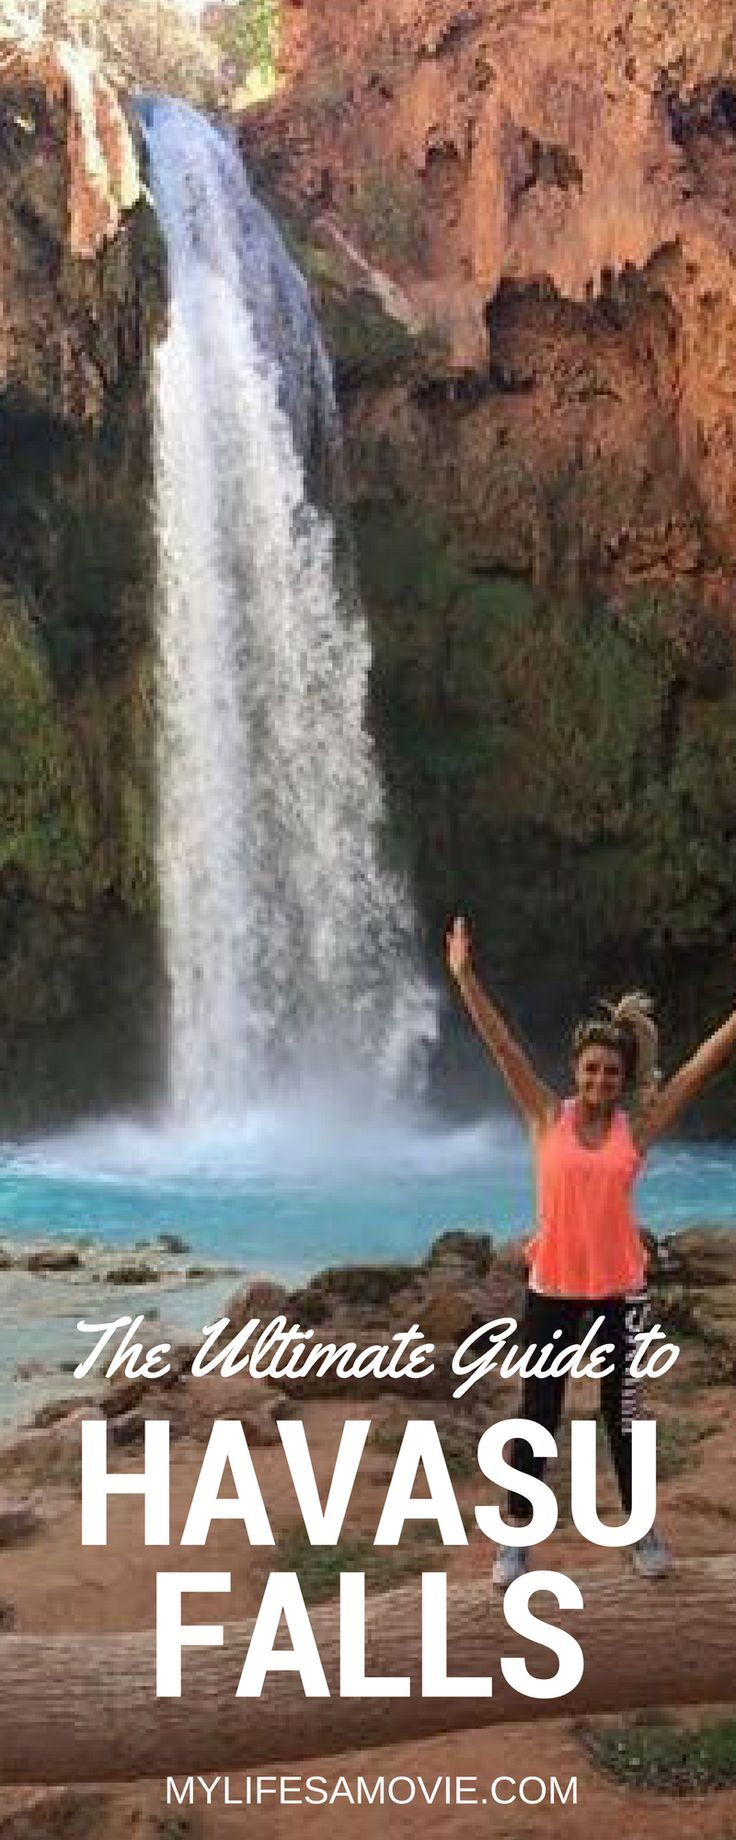 The Ultimate Guide to Havasu Falls in Arizona! All the info you need to plan a Day Hike to Havasu Falls, make a reservation for camping, and how to get to all of the waterfalls in the reservation that Havasu Falls is located in!